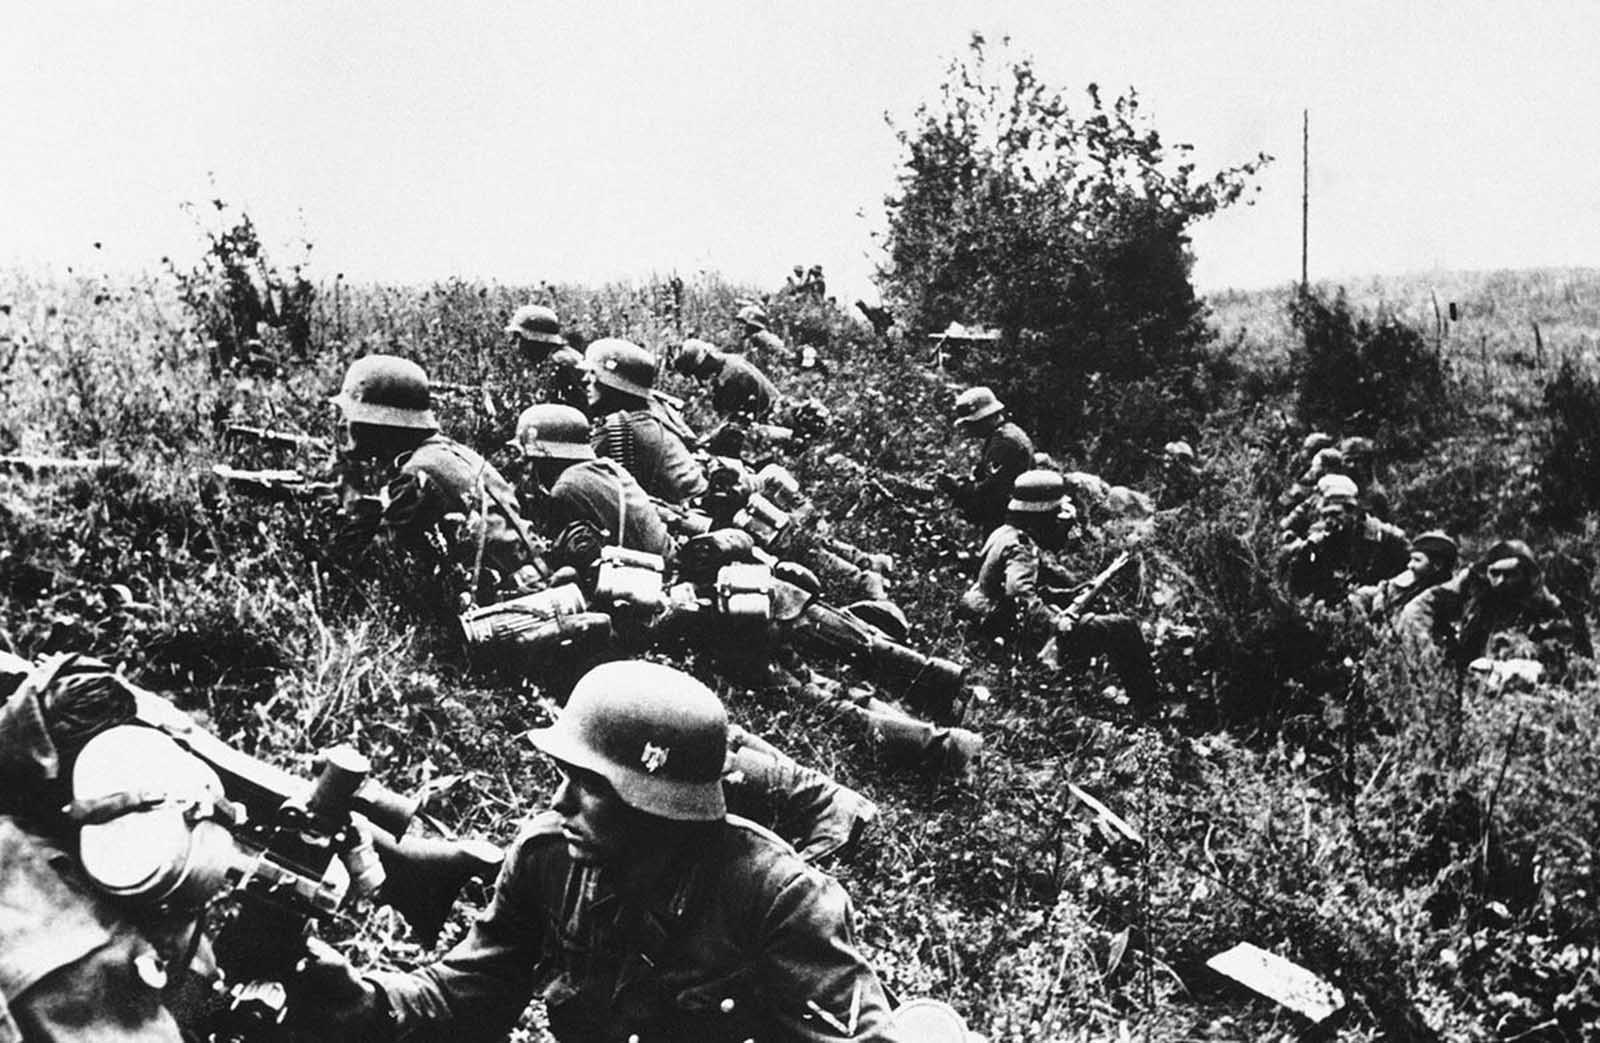 Nazi troops lie concealed in the undergrowth during the fighting prior to the capture of Kiev, Ukraine, in 1941.